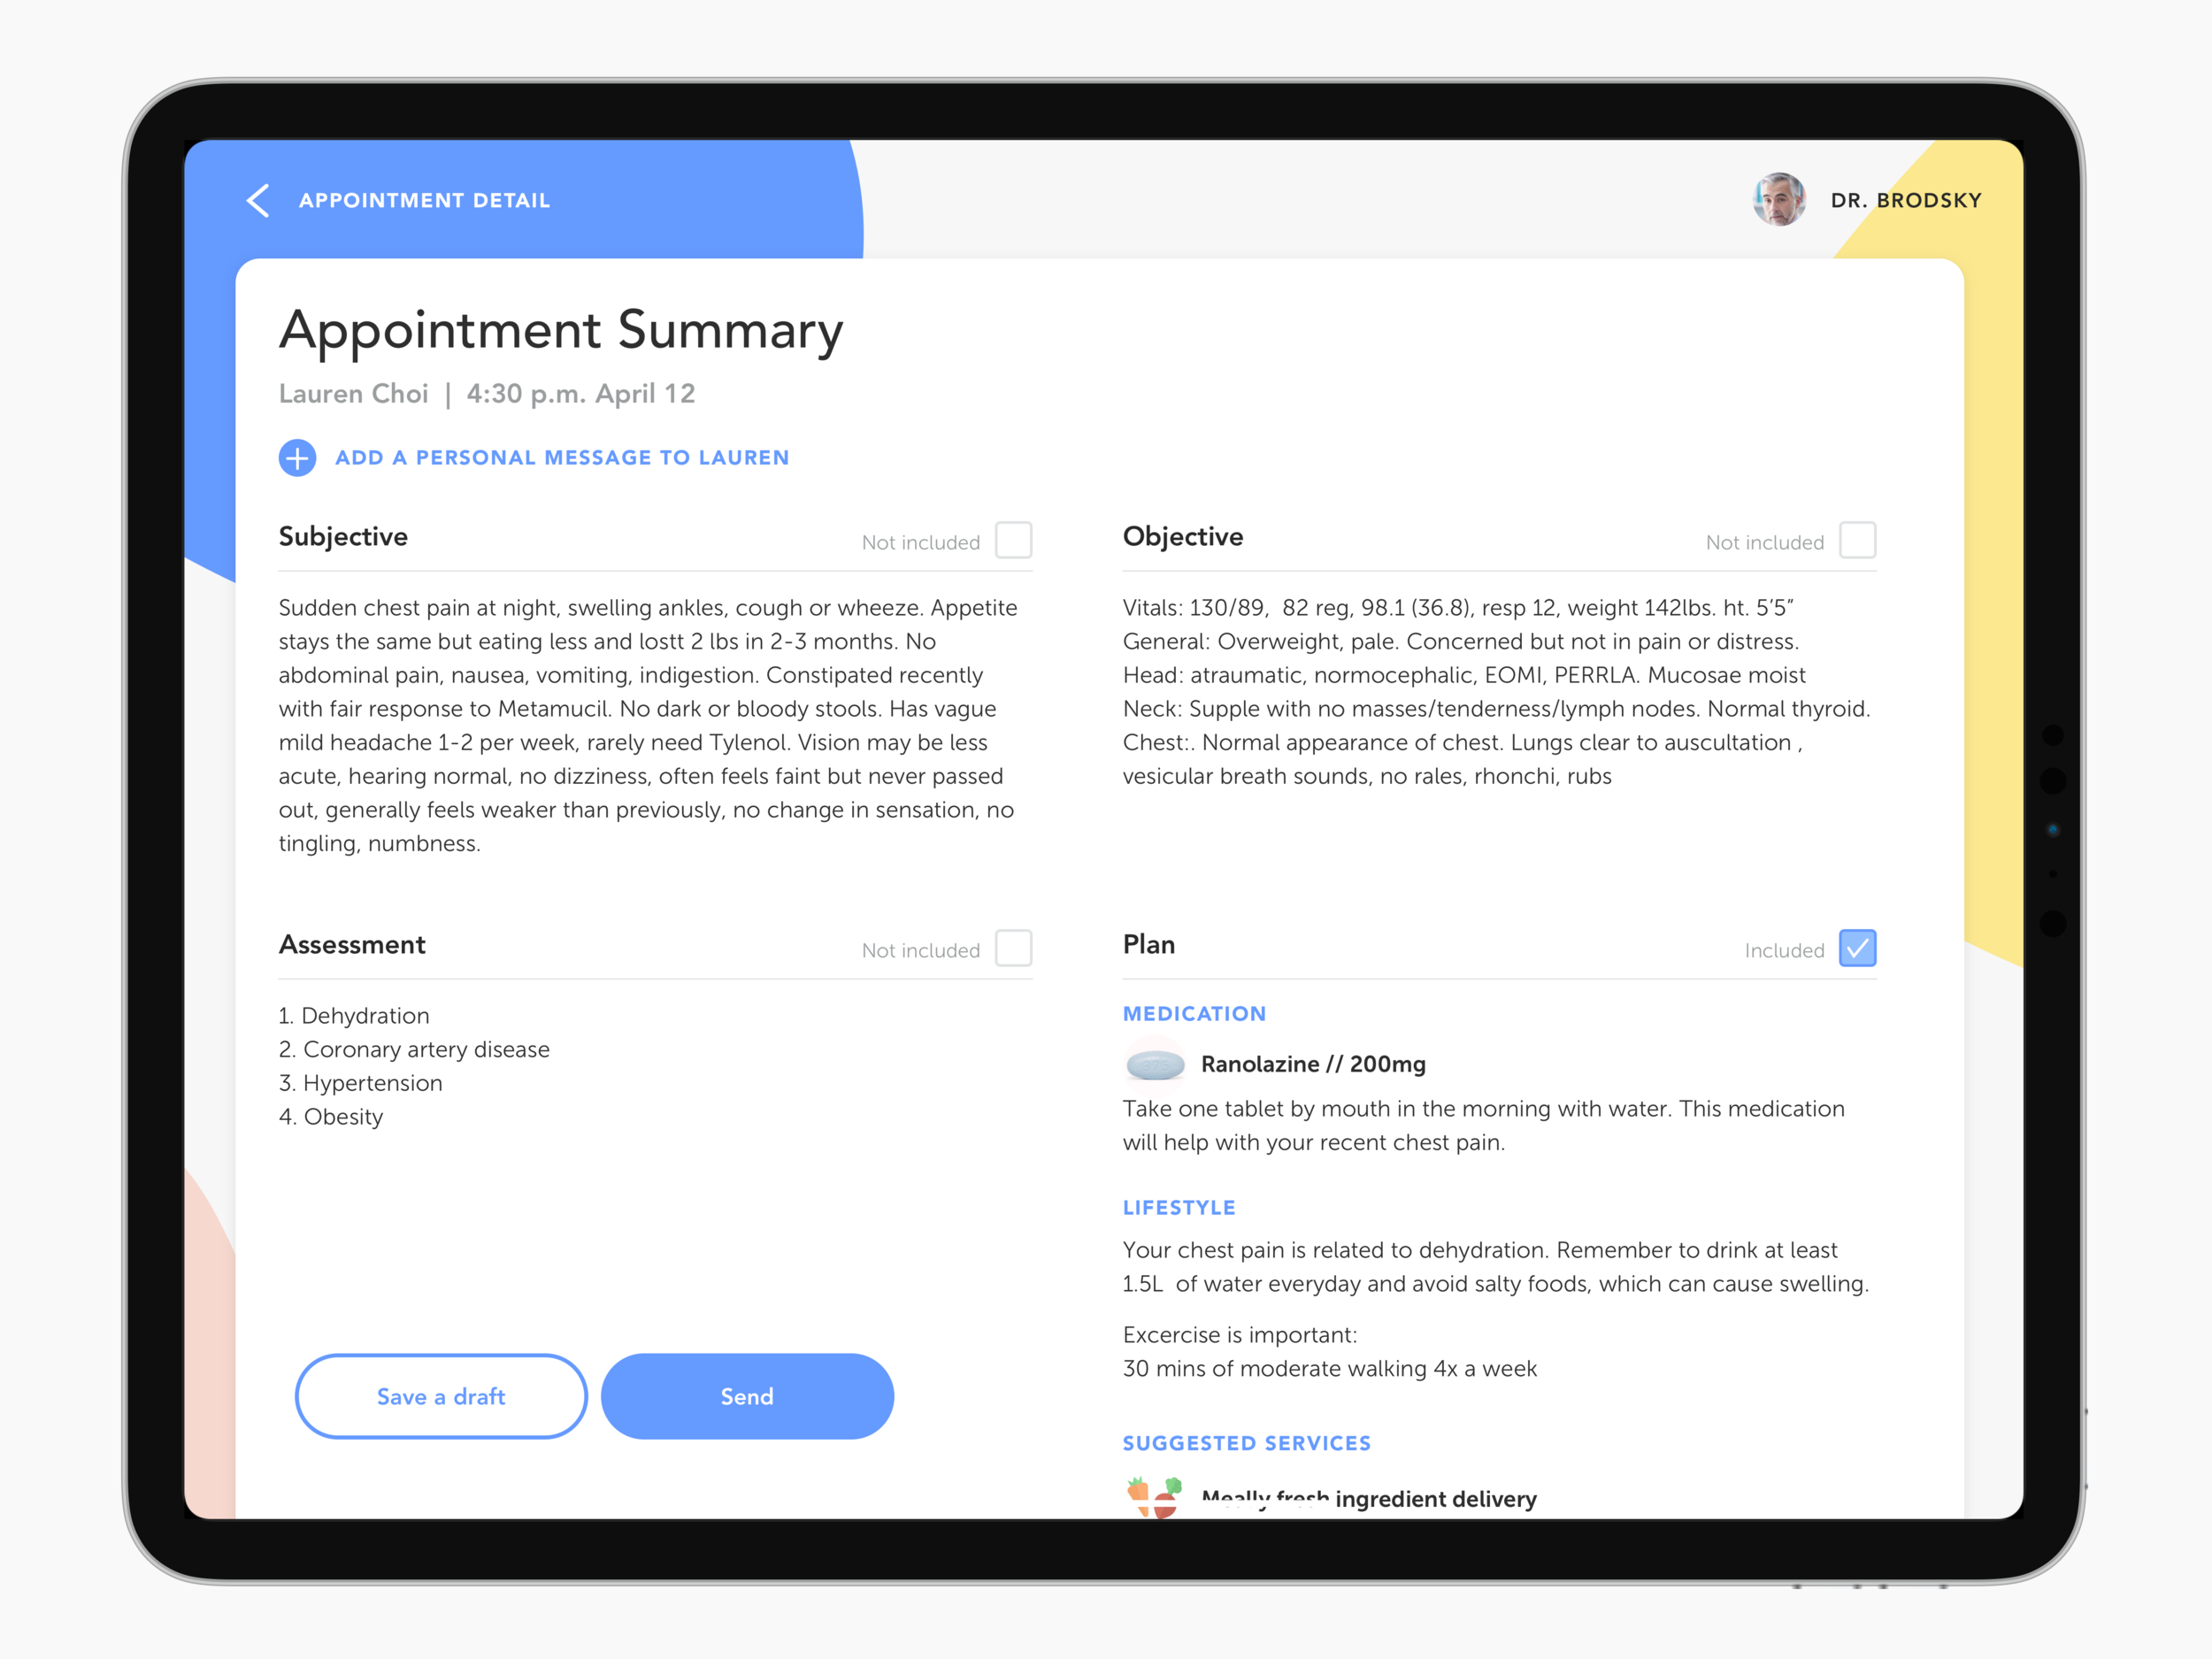 D: Generating appointment summary in the background